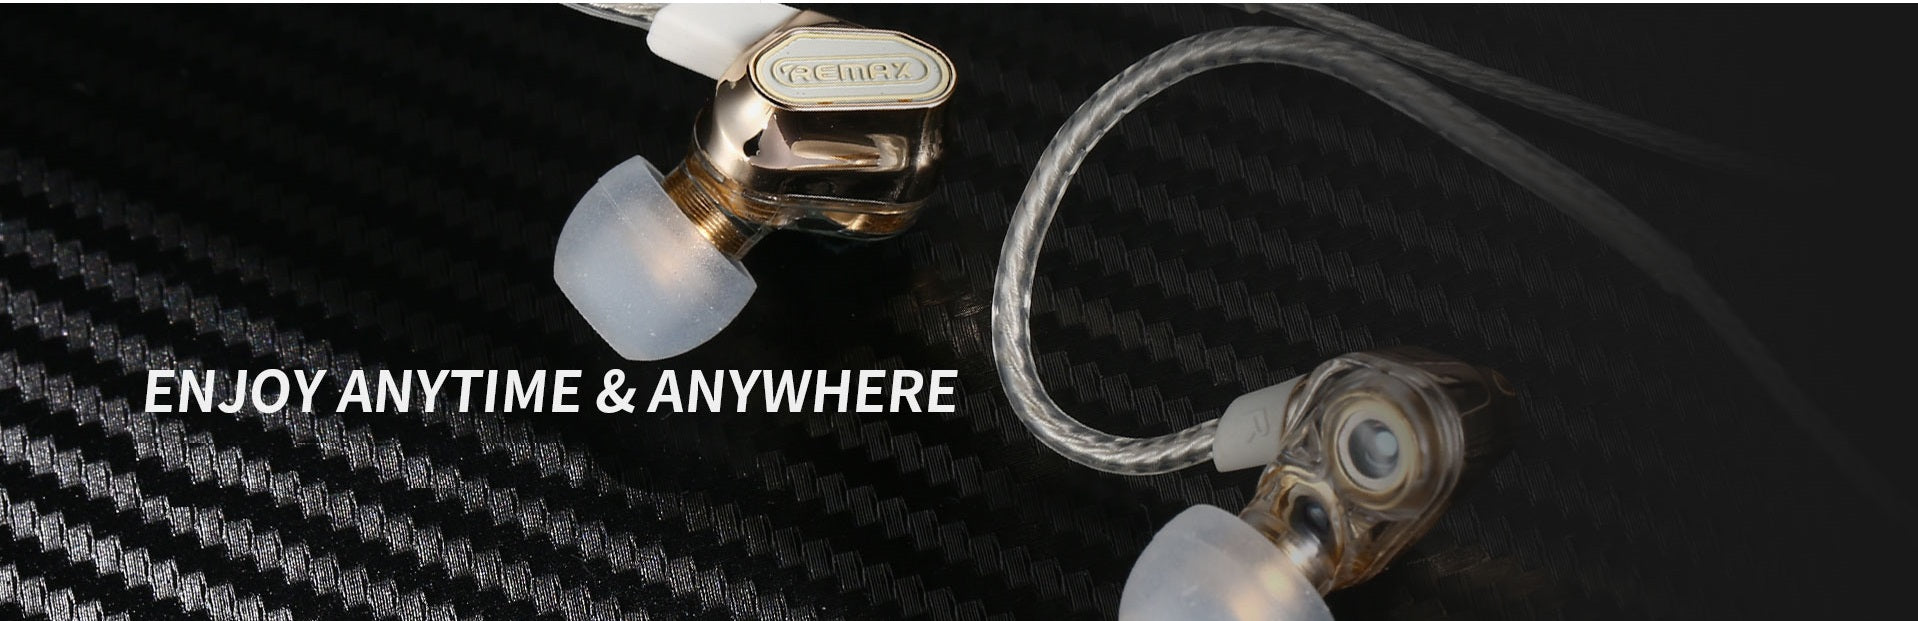 https://www.iremax.com/products/music-wired-earphone-rm-580